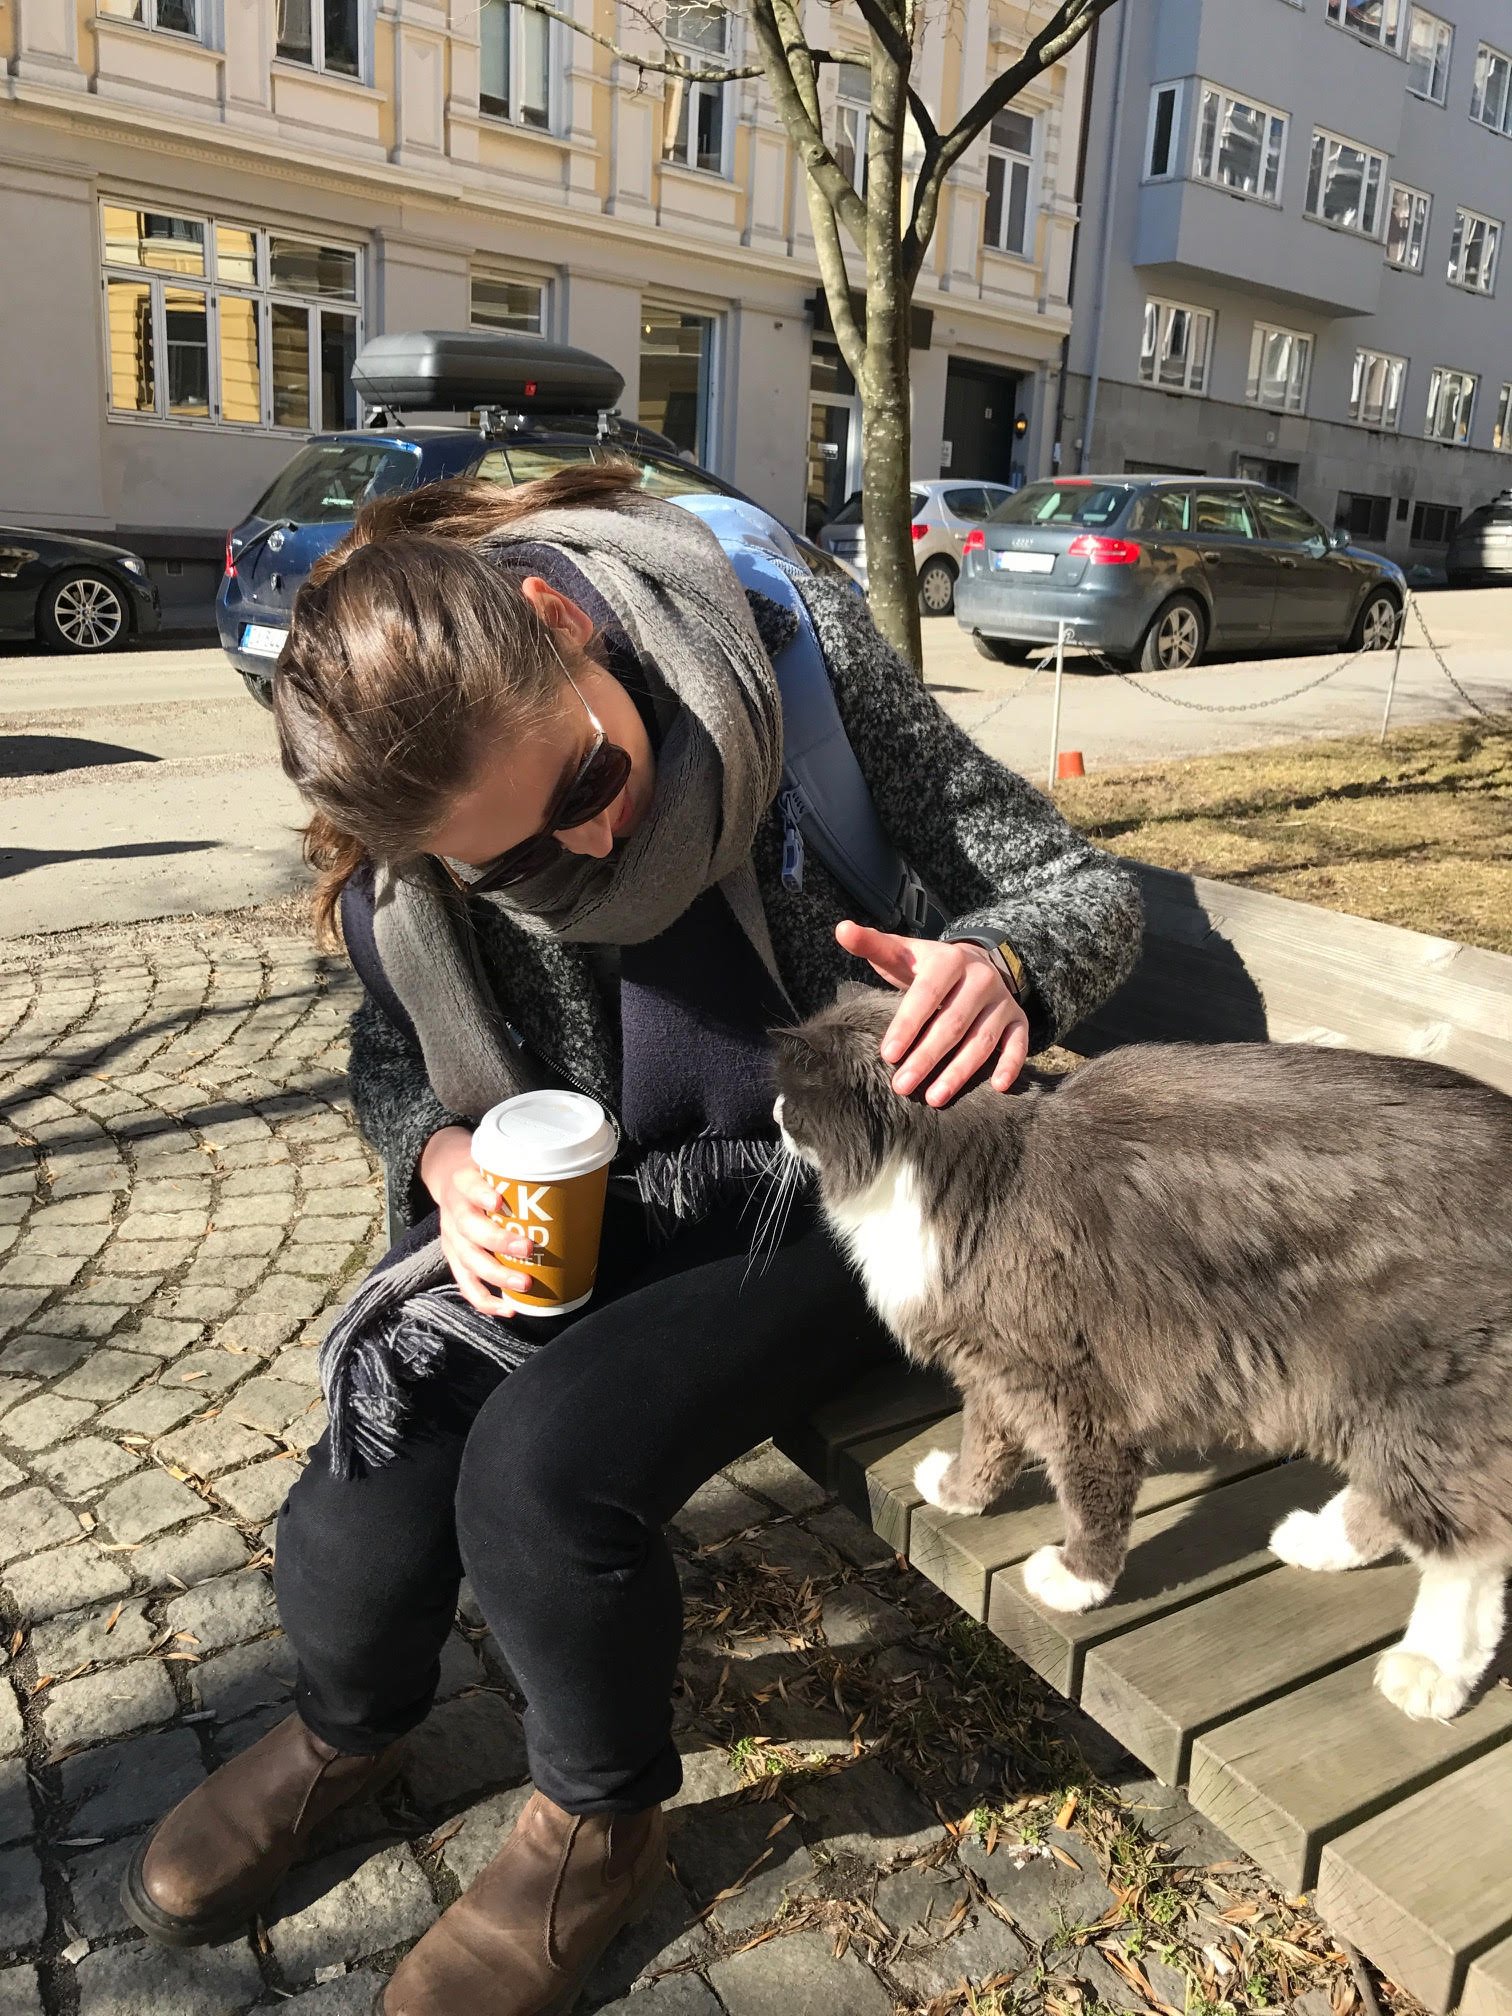 There is no better stress reliever than spending your free period in the sun, petting one of the local cats. We found this little one sunbathing on the bench when we were headed back to school after lunch today, and just had to sneak in a little cuddle.